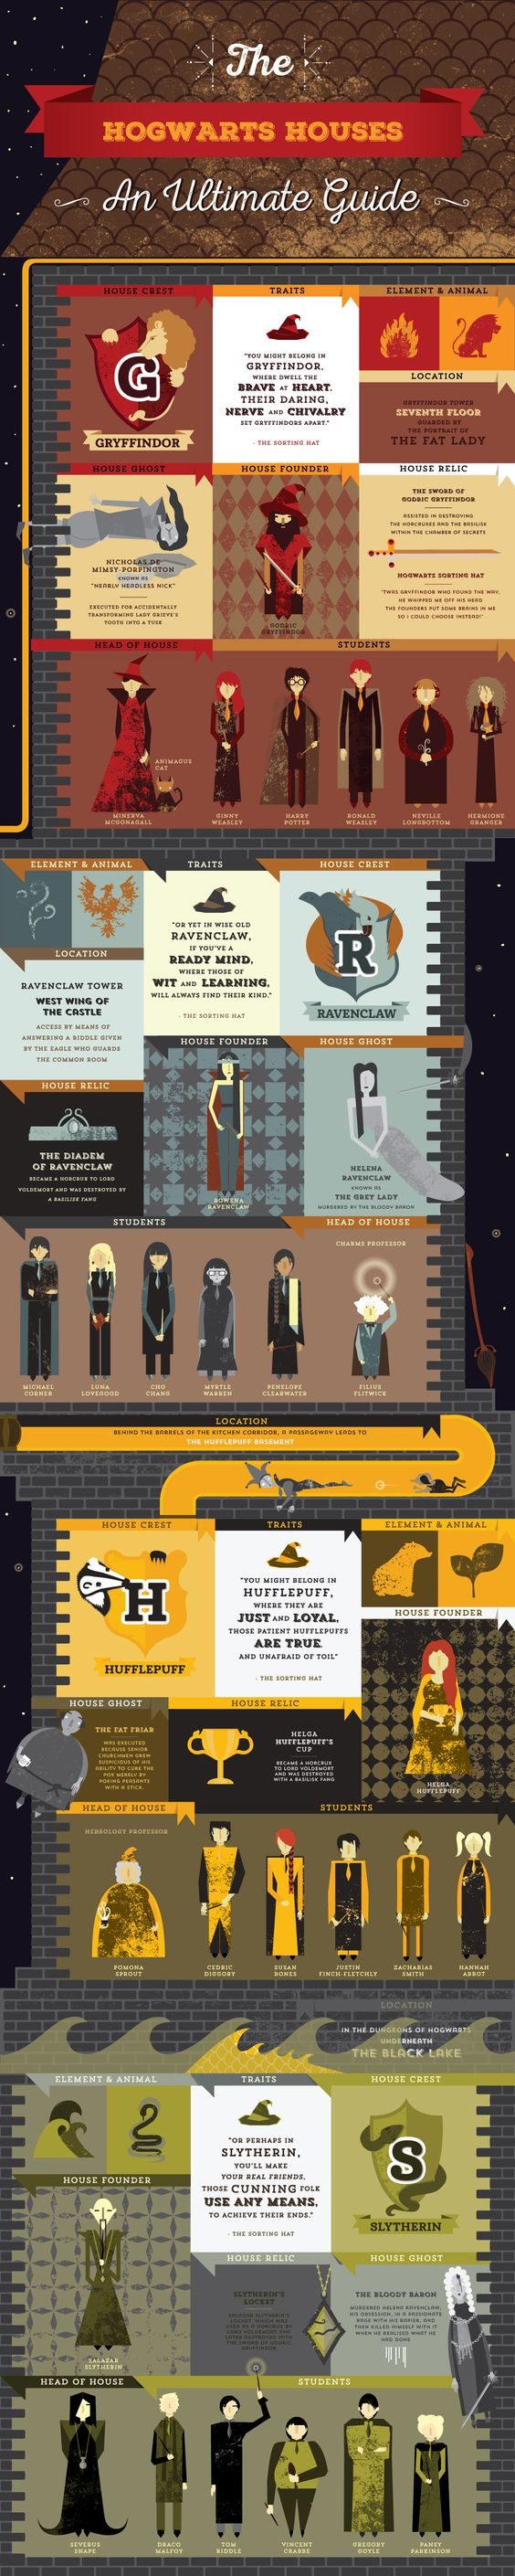 hogwarts h user hogwarts and infografik on pinterest. Black Bedroom Furniture Sets. Home Design Ideas